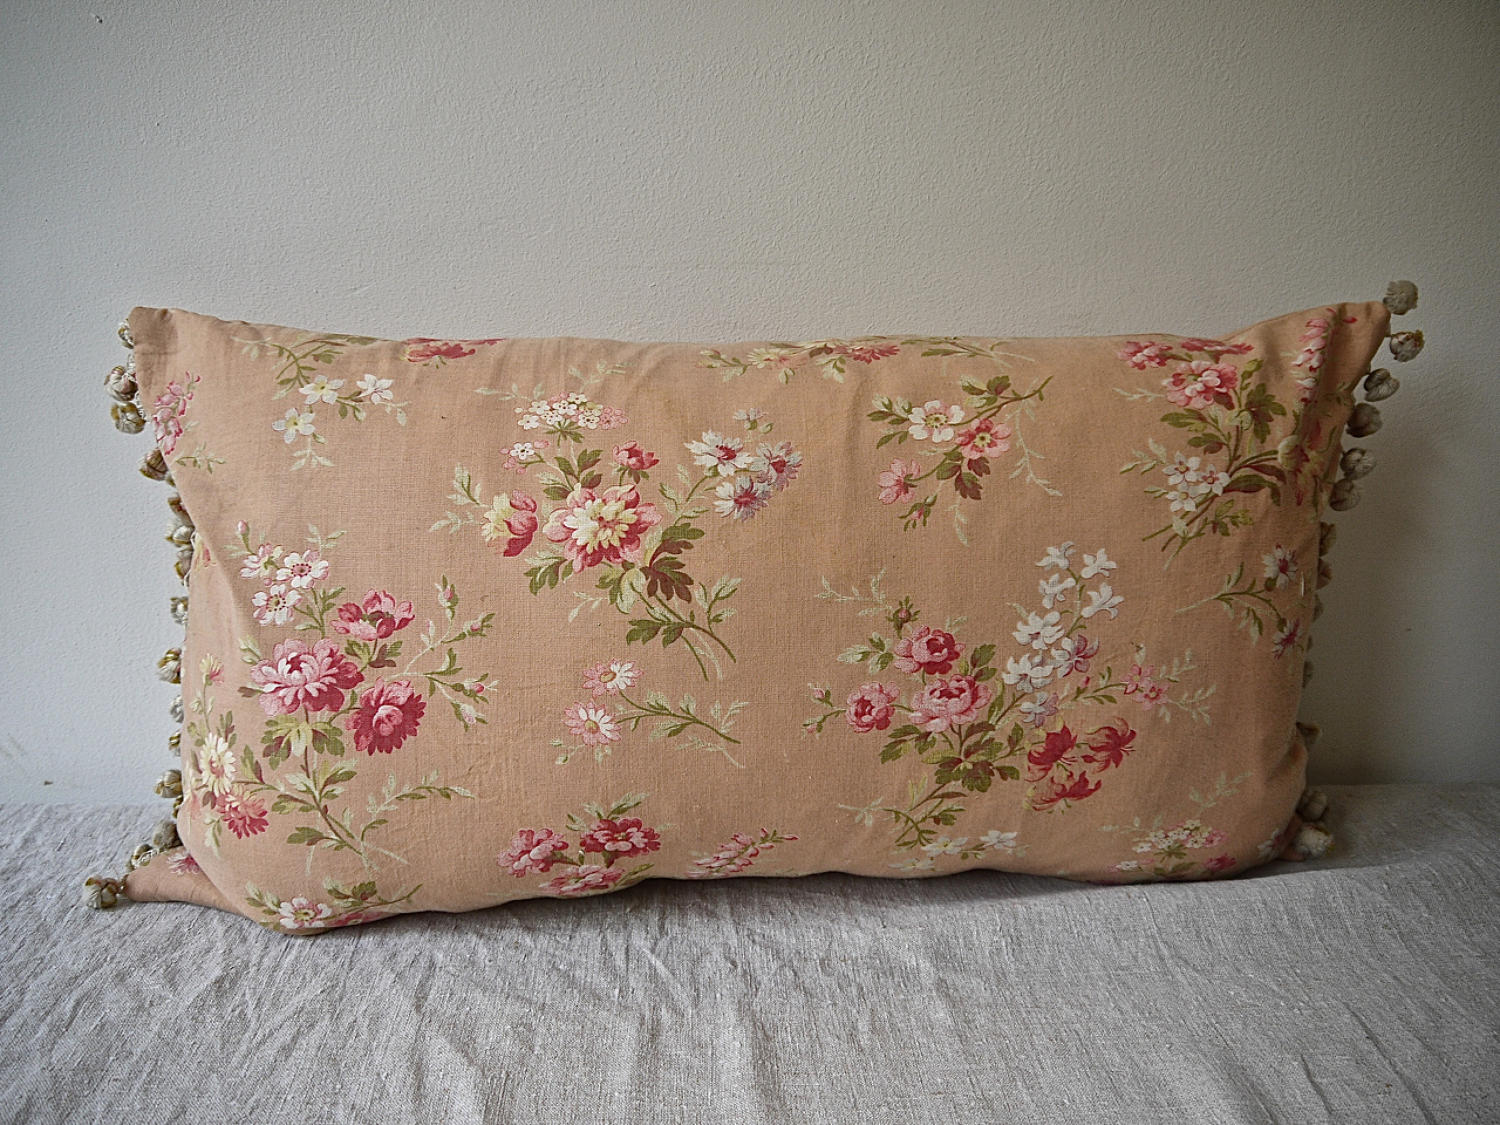 Early 20th century French red floral cotton cushion